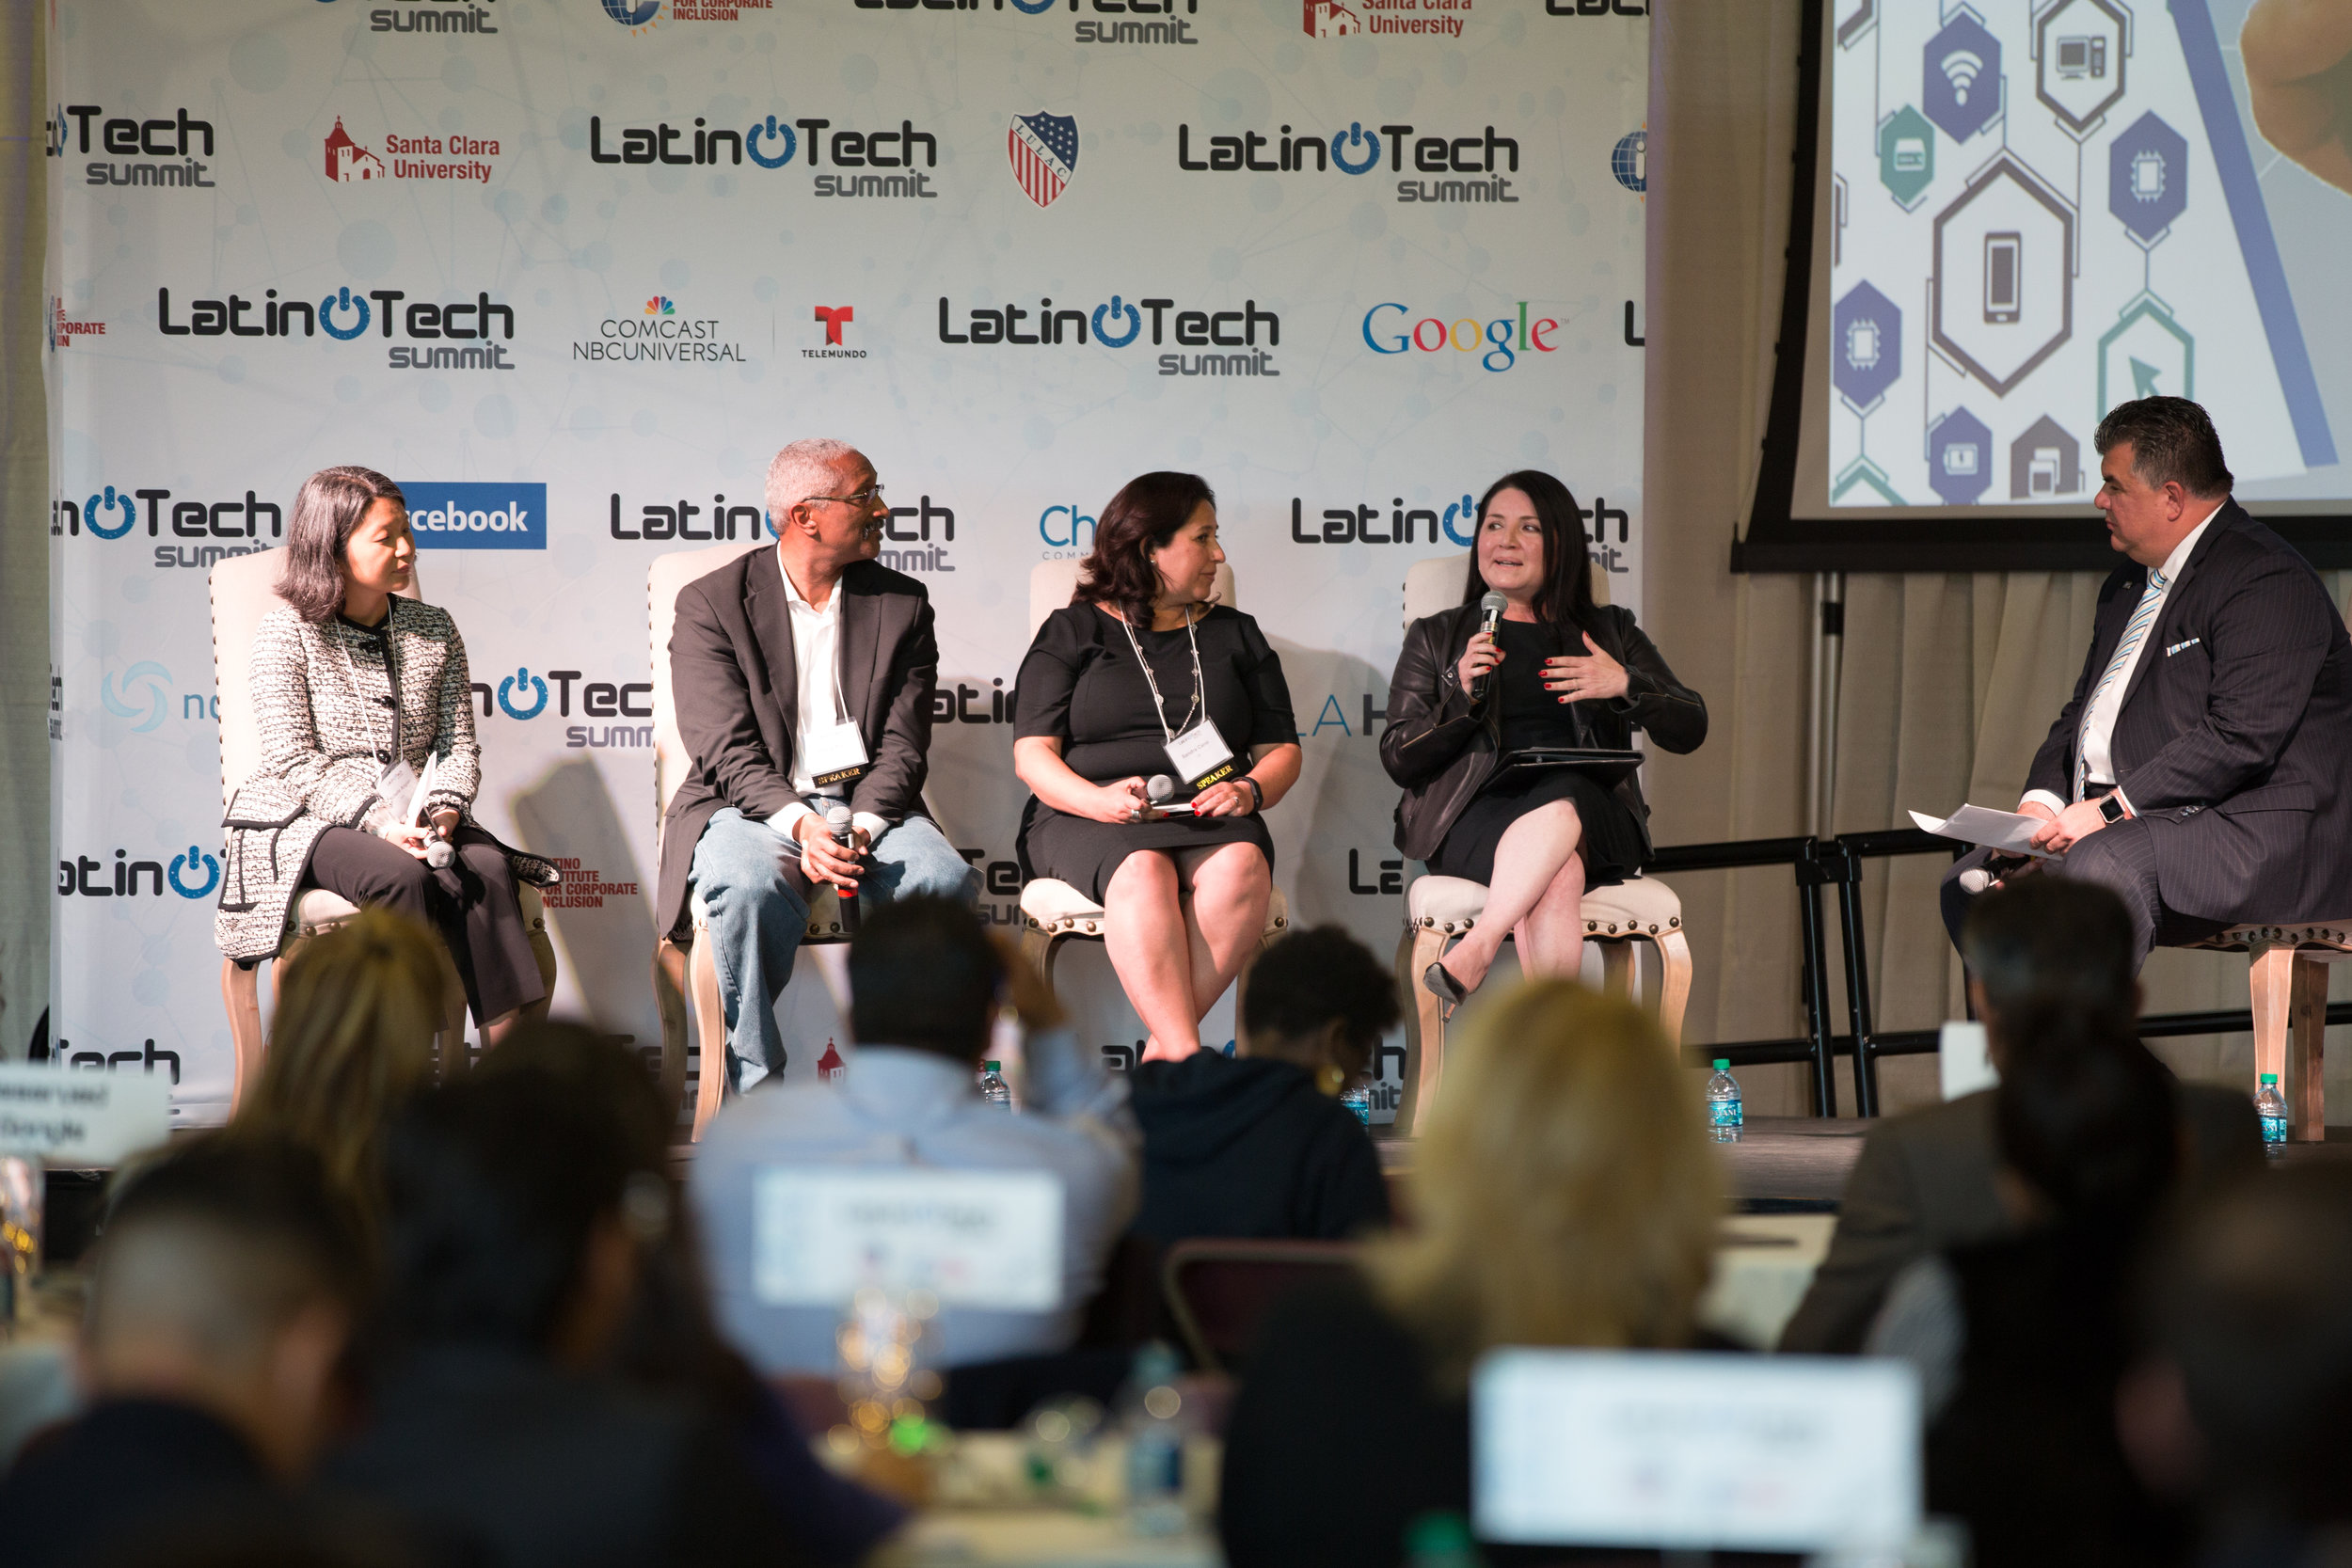 Representatives from Comcast, GE Digital, Intuit, HITTec, and SAP Labs discuss the importance of fostering inclusive work environments in tech.